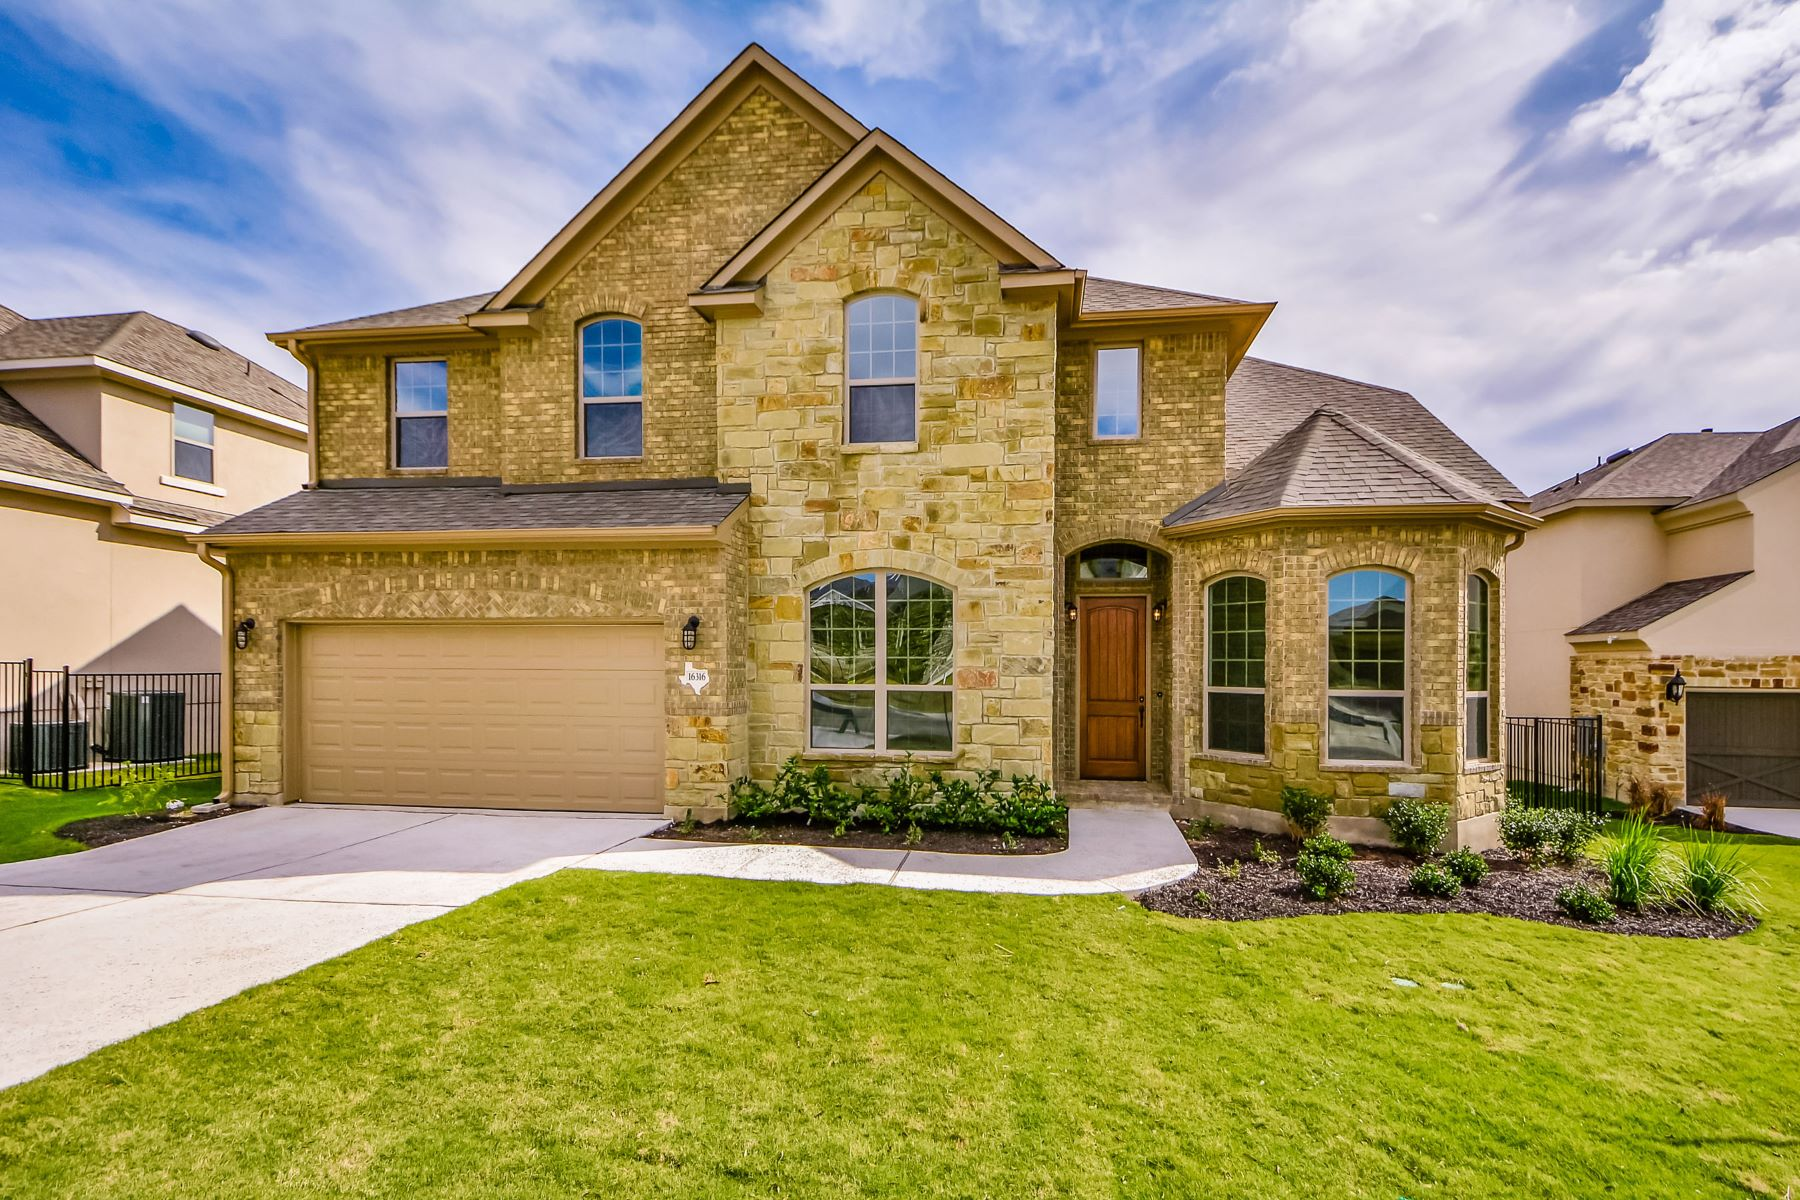 Single Family Home for Sale at Beautiful Home in Rocky Creek 16316 Leopold Trl Austin, Texas 78738 United States